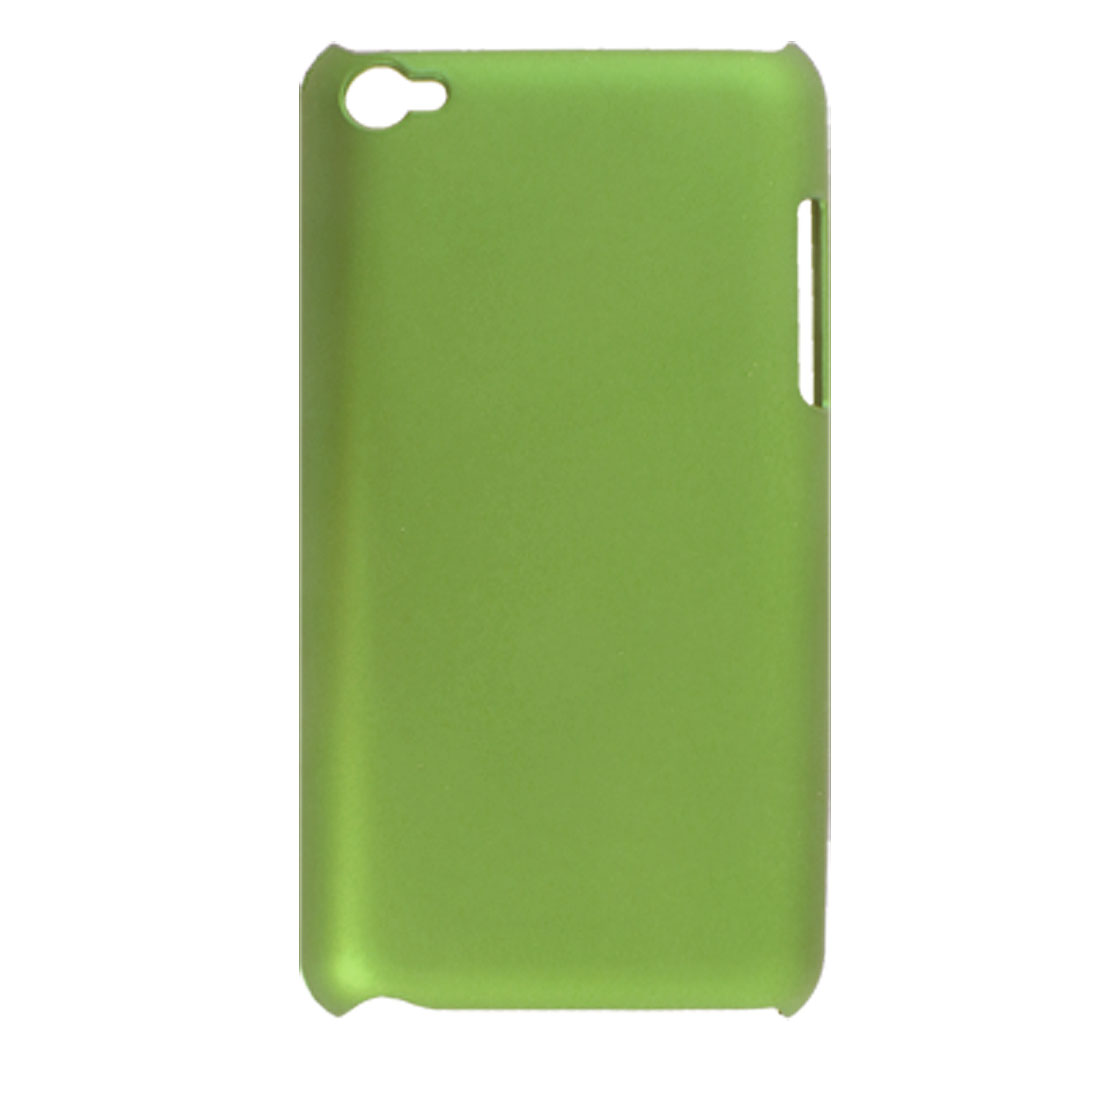 Green Hard Plastic Back Case Protector for iPod Touch 4G